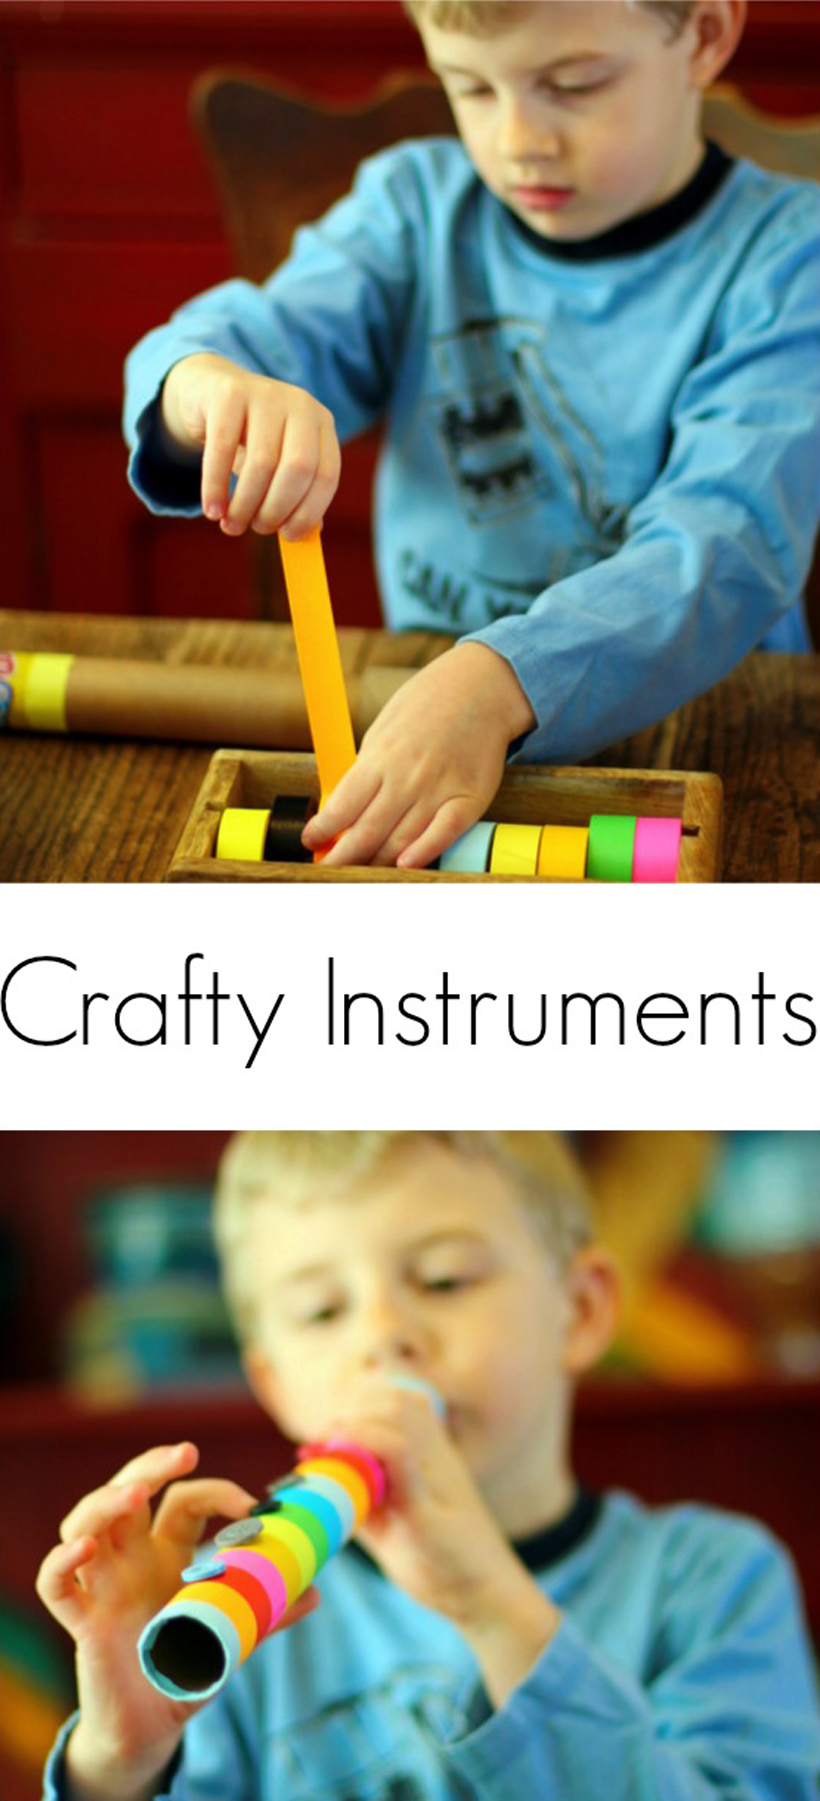 diy crafty instruments